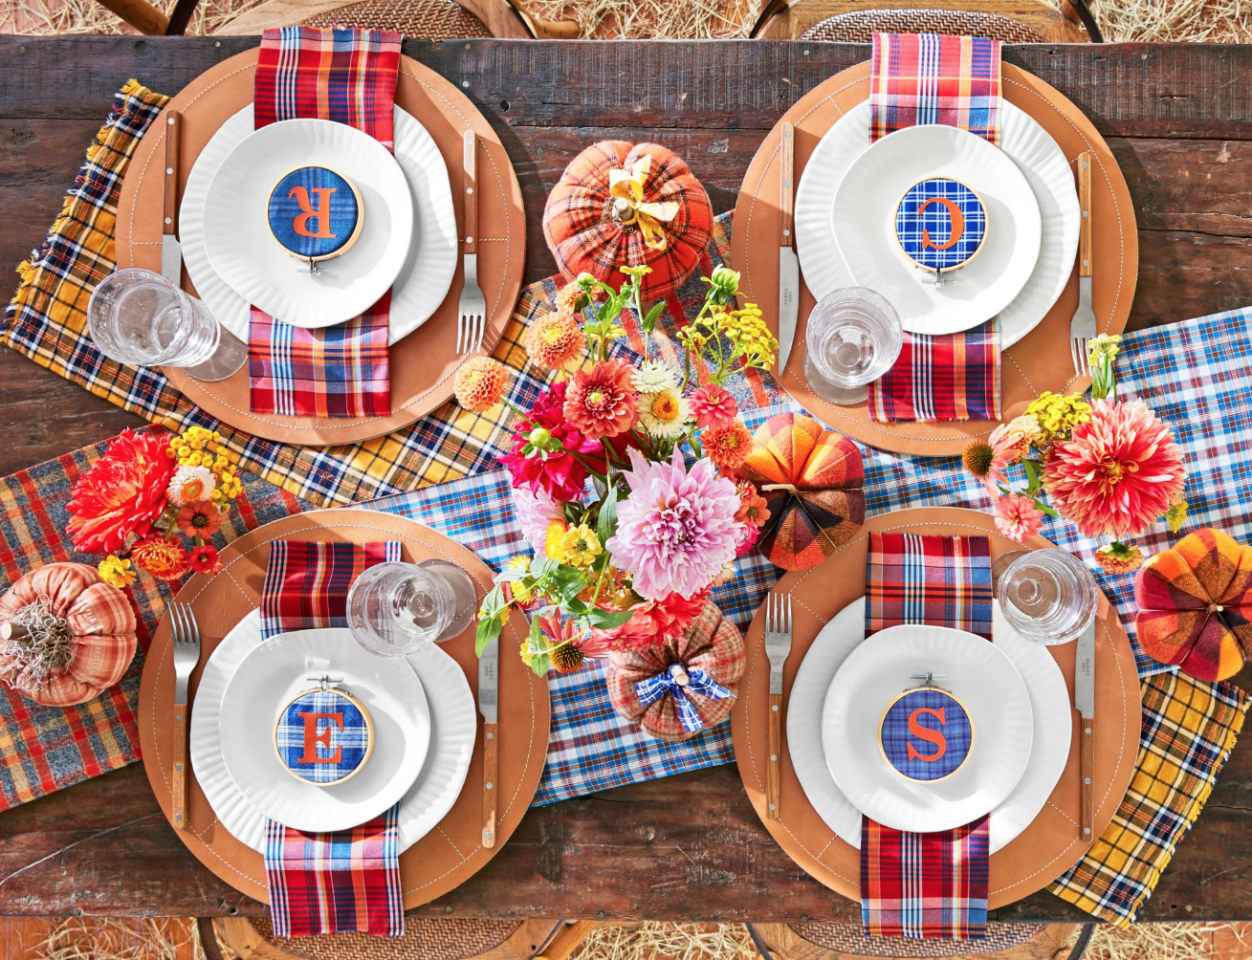 "<p>There's no need to reuse the same Thanksgiving decorations year after year! This holiday season, create an inviting, unique <a href=""https://www.countryliving.com/fall/"">fall</a> scene with a few new DIY projects. From rustic <a href=""https://www.countryliving.com/entertaining/g634/thanksgiving-table-settings-1108/"">Thanksgiving table settings</a> to easy Thanksgiving decorating ideas for your living and dining room, there's a new idea in here for just about every hostess-to-be—regardless of her personal style or taste. Craft <a href=""https://www.countryliving.com/entertaining/g2130/thanksgiving-centerpieces/"">Turkey Day centerpieces</a> to delight all your <a href=""https://www.countryliving.com/food-drinks/g637/thanksgiving-menus/"">Thanksgiving dinner</a> guests, make charming ice buckets out of craft pumpkins, or string together miniature wreaths with which to decorate your candles. When it comes to DIY decor, the possibilities are endless! </p><p>Looking for outdoor Thanksgiving decorations too? We've got a ton of those: Our Thanksgiving <a href=""https://www.countryliving.com/diy-crafts/g2610/fall-door-decorations/"">door decor</a> ideas and <a href=""https://www.countryliving.com/diy-crafts/g1988/fall-craft-projects/"">DIY fall wreaths</a> are an easy way to refresh your <a href=""https://www.countryliving.com/home-design/decorating-ideas/g2621/fall-porch-decorating/"">front porch</a> and make a lasting impression on your guests—before they even set foot in your home. Of course, on <a href=""https://www.countryliving.com/life/a25020918/what-day-is-thanksgiving/"">Thanksgiving</a>, the dining room table should be considered the crown jewel of your home. That's why we've put so much extra thought into Thanksgiving table decorating ideas that'll delight your entire family—even your youngest kids. Whether you're looking for a fun kraft paper tablecloth, a printable banner, or an inexpensive arrangement, we've got you covered.</p>"